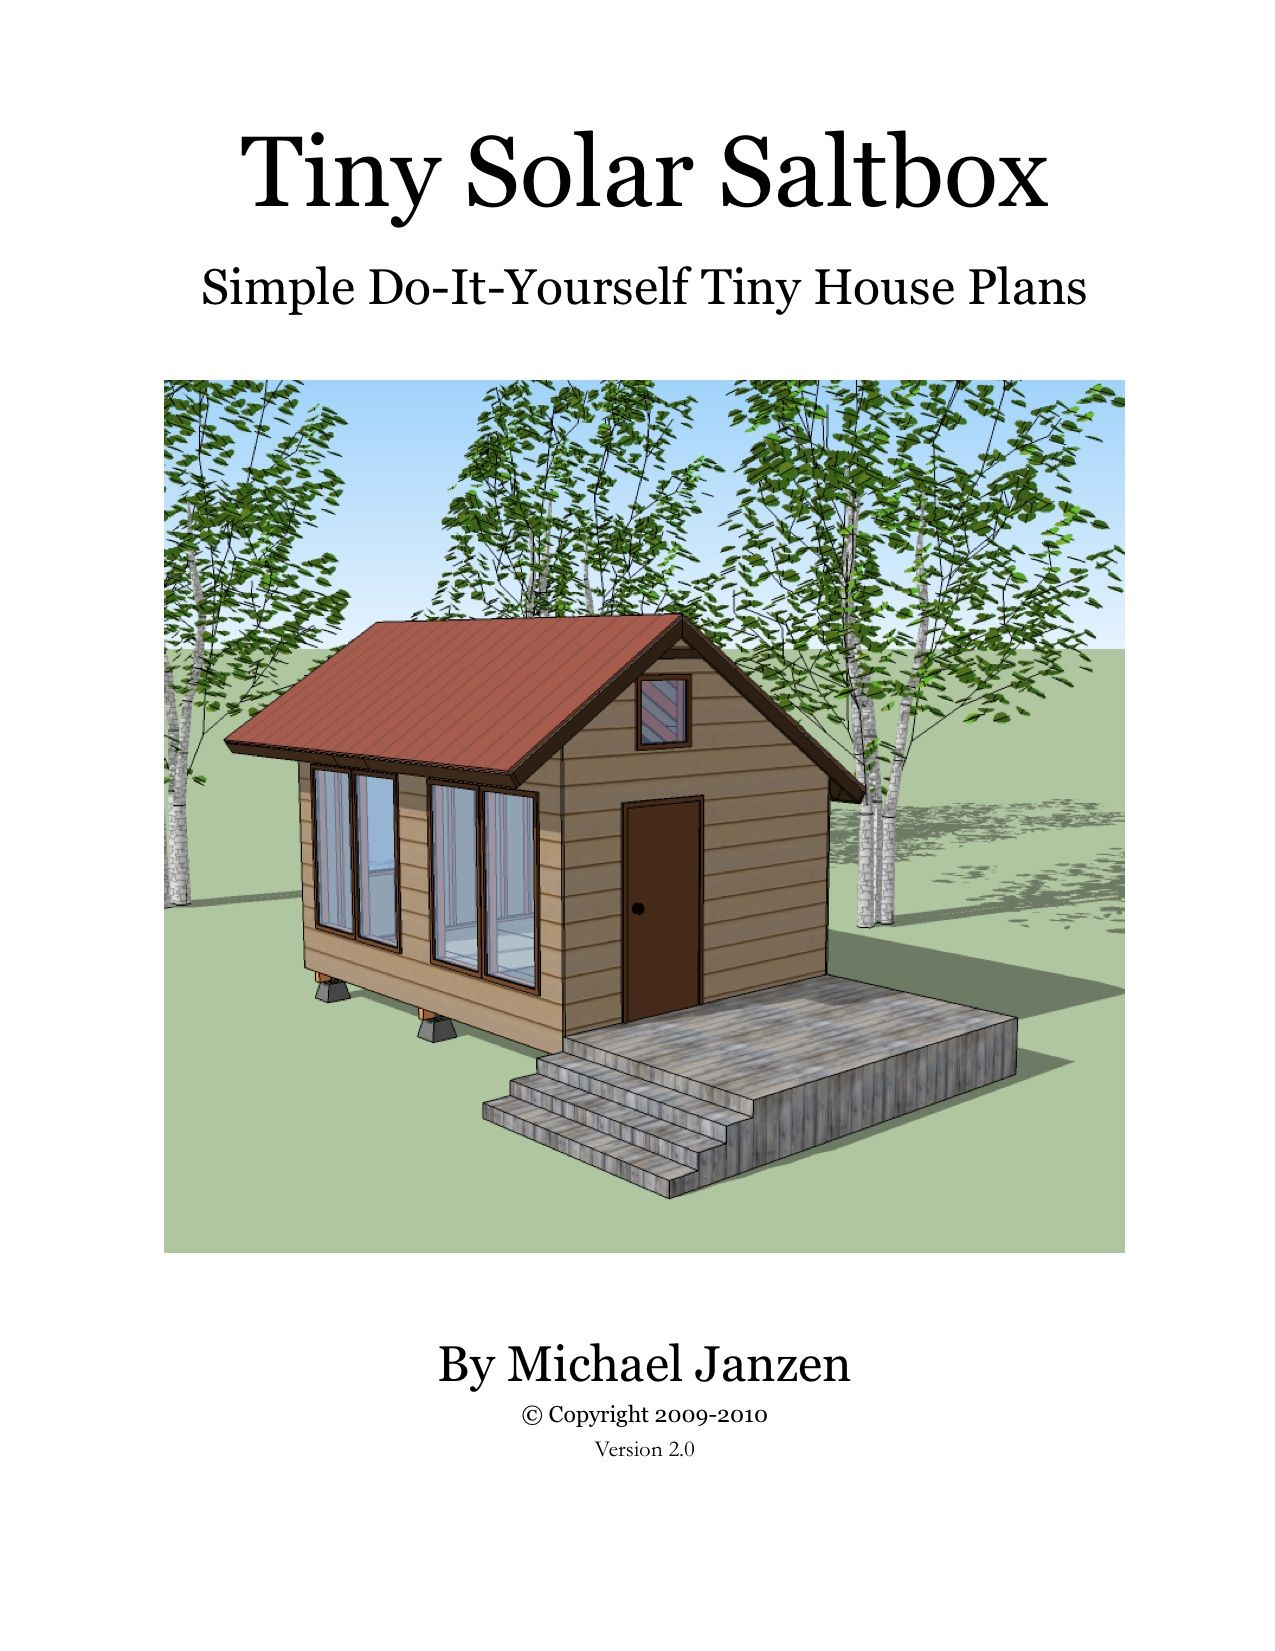 Small House Plans Tiny Solar Saltbox cover – Tiny House Design